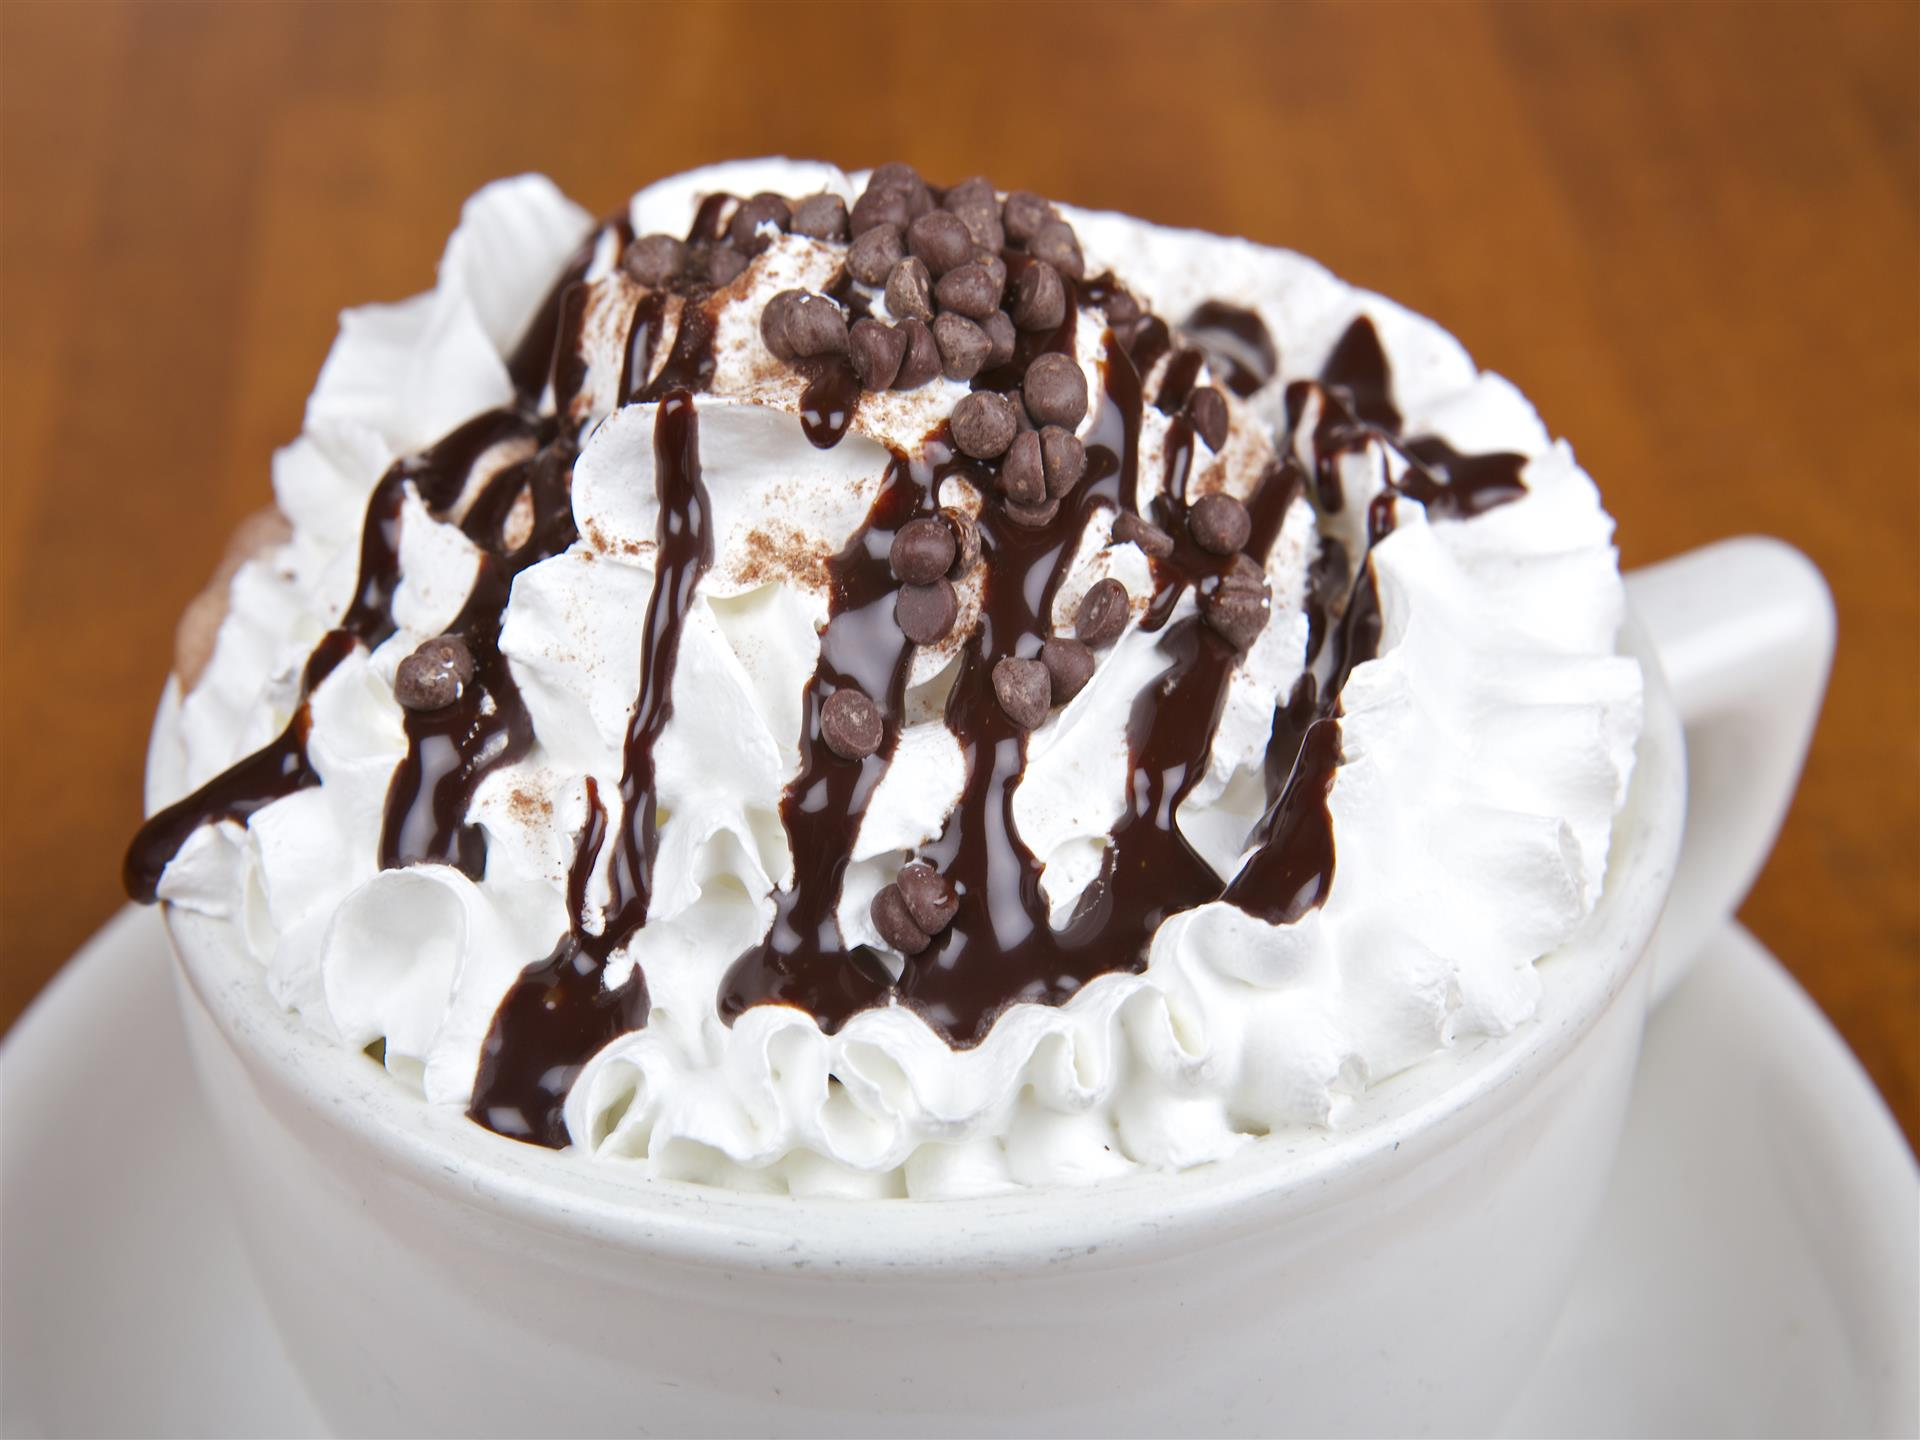 Hot chocolate in a white mug with whipped cream, drizzled chocolate syrup, chocolate chips and cinnamon